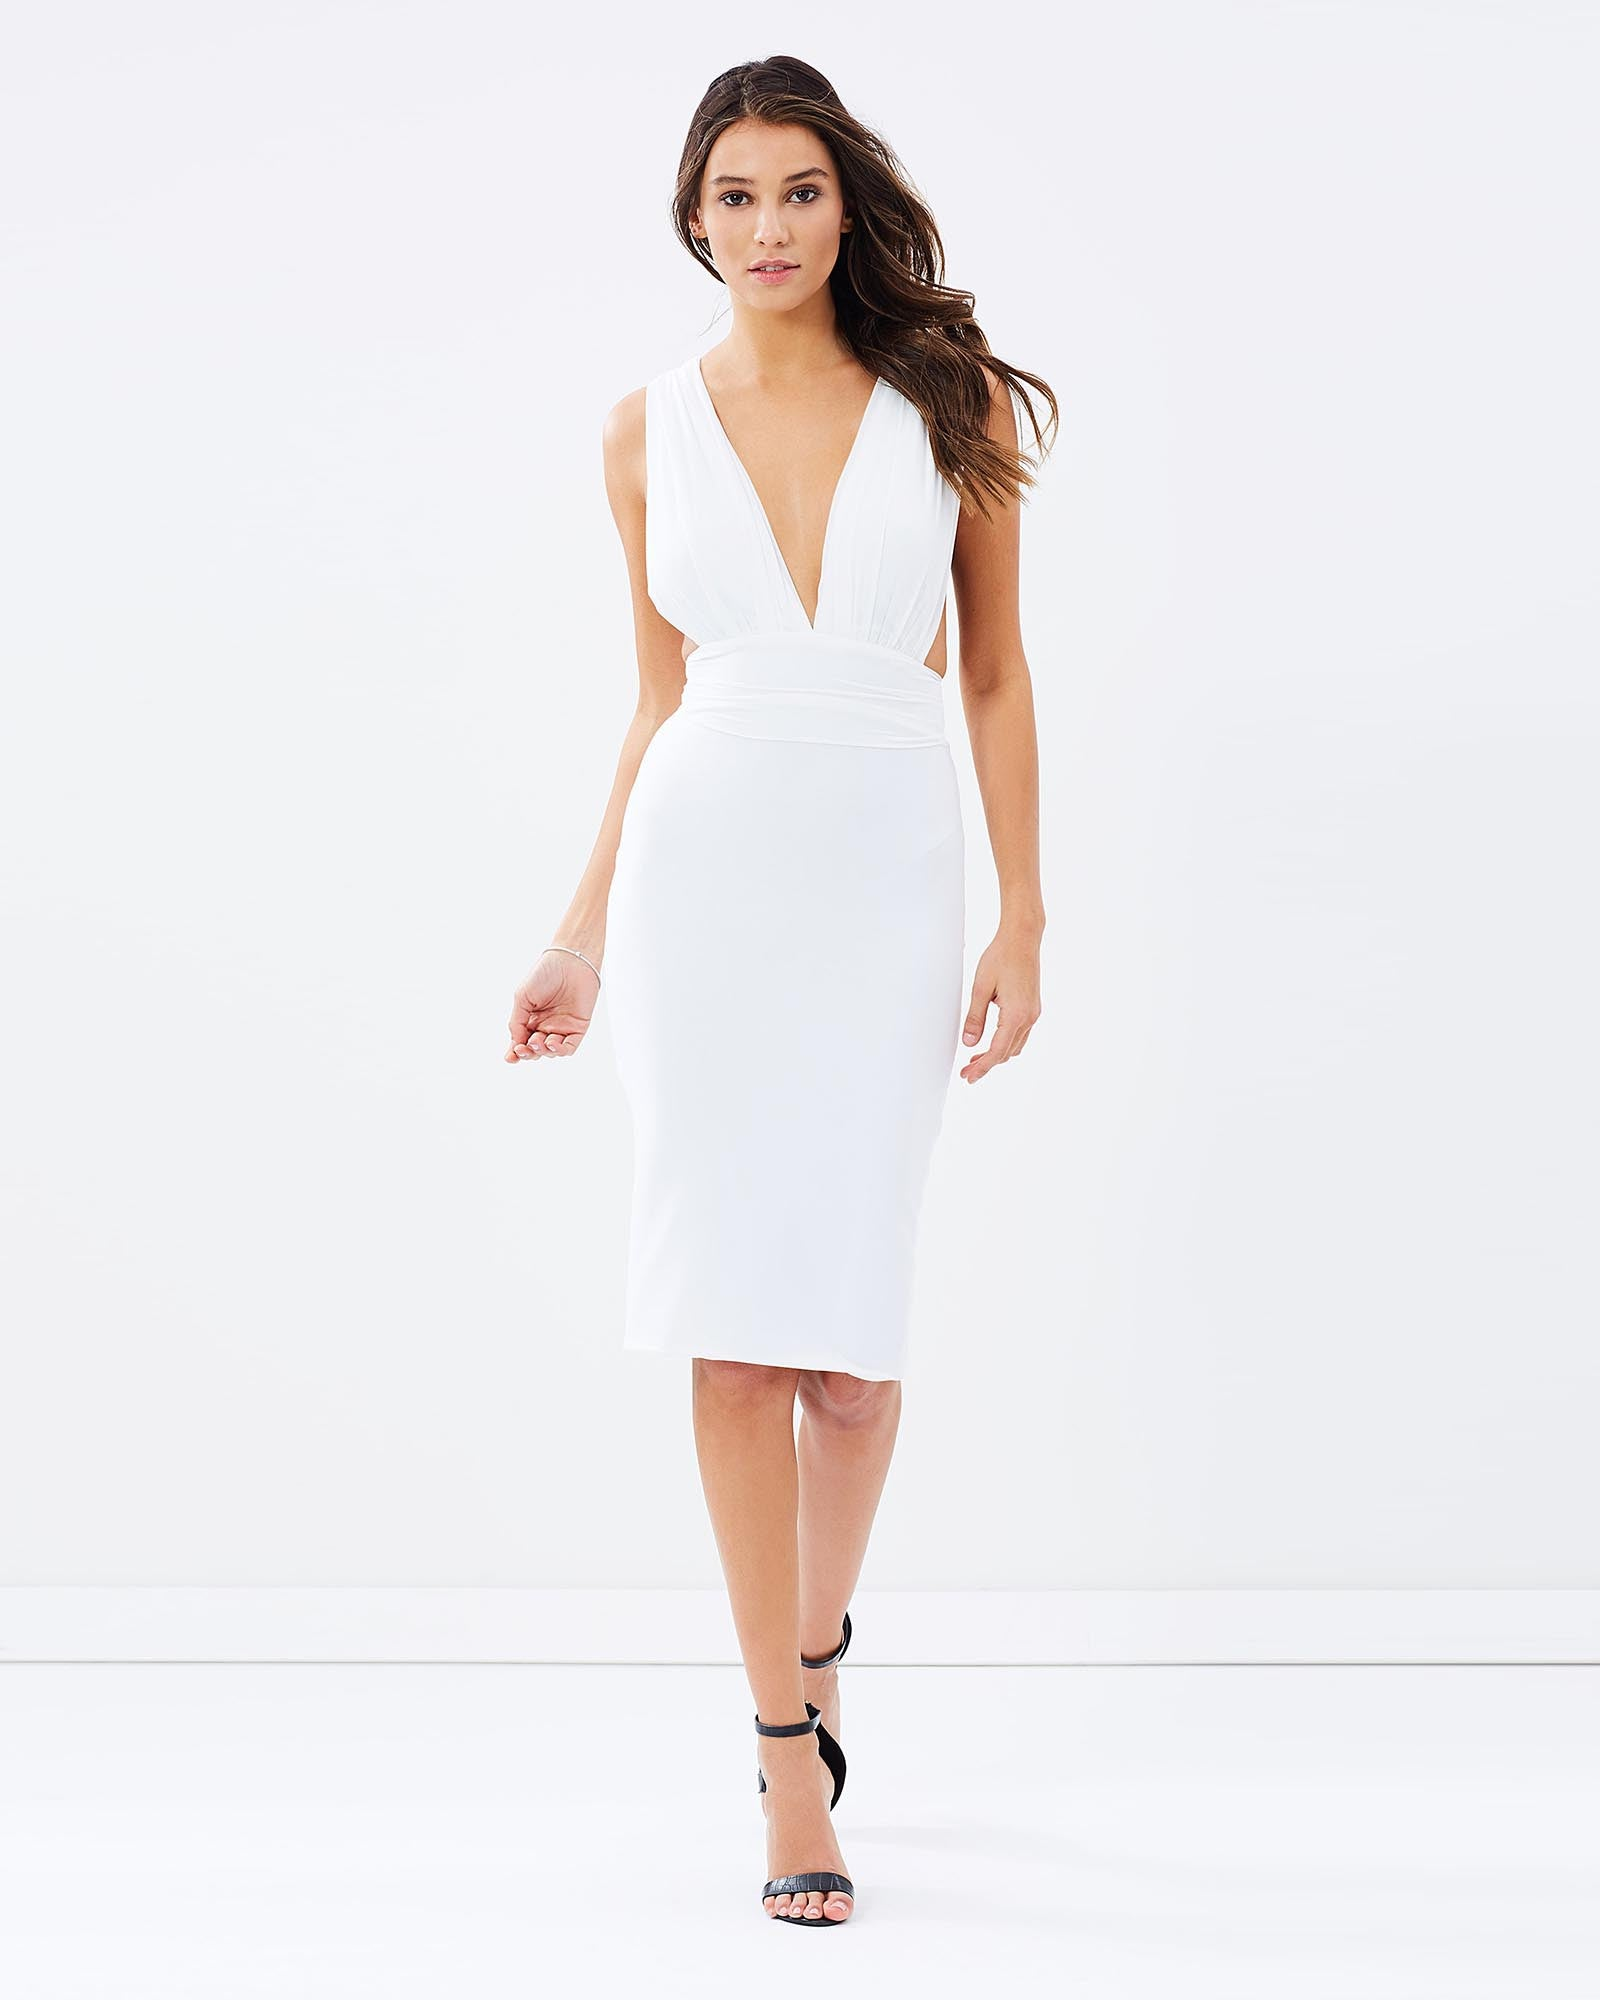 V Neck Cocktail Dress - White